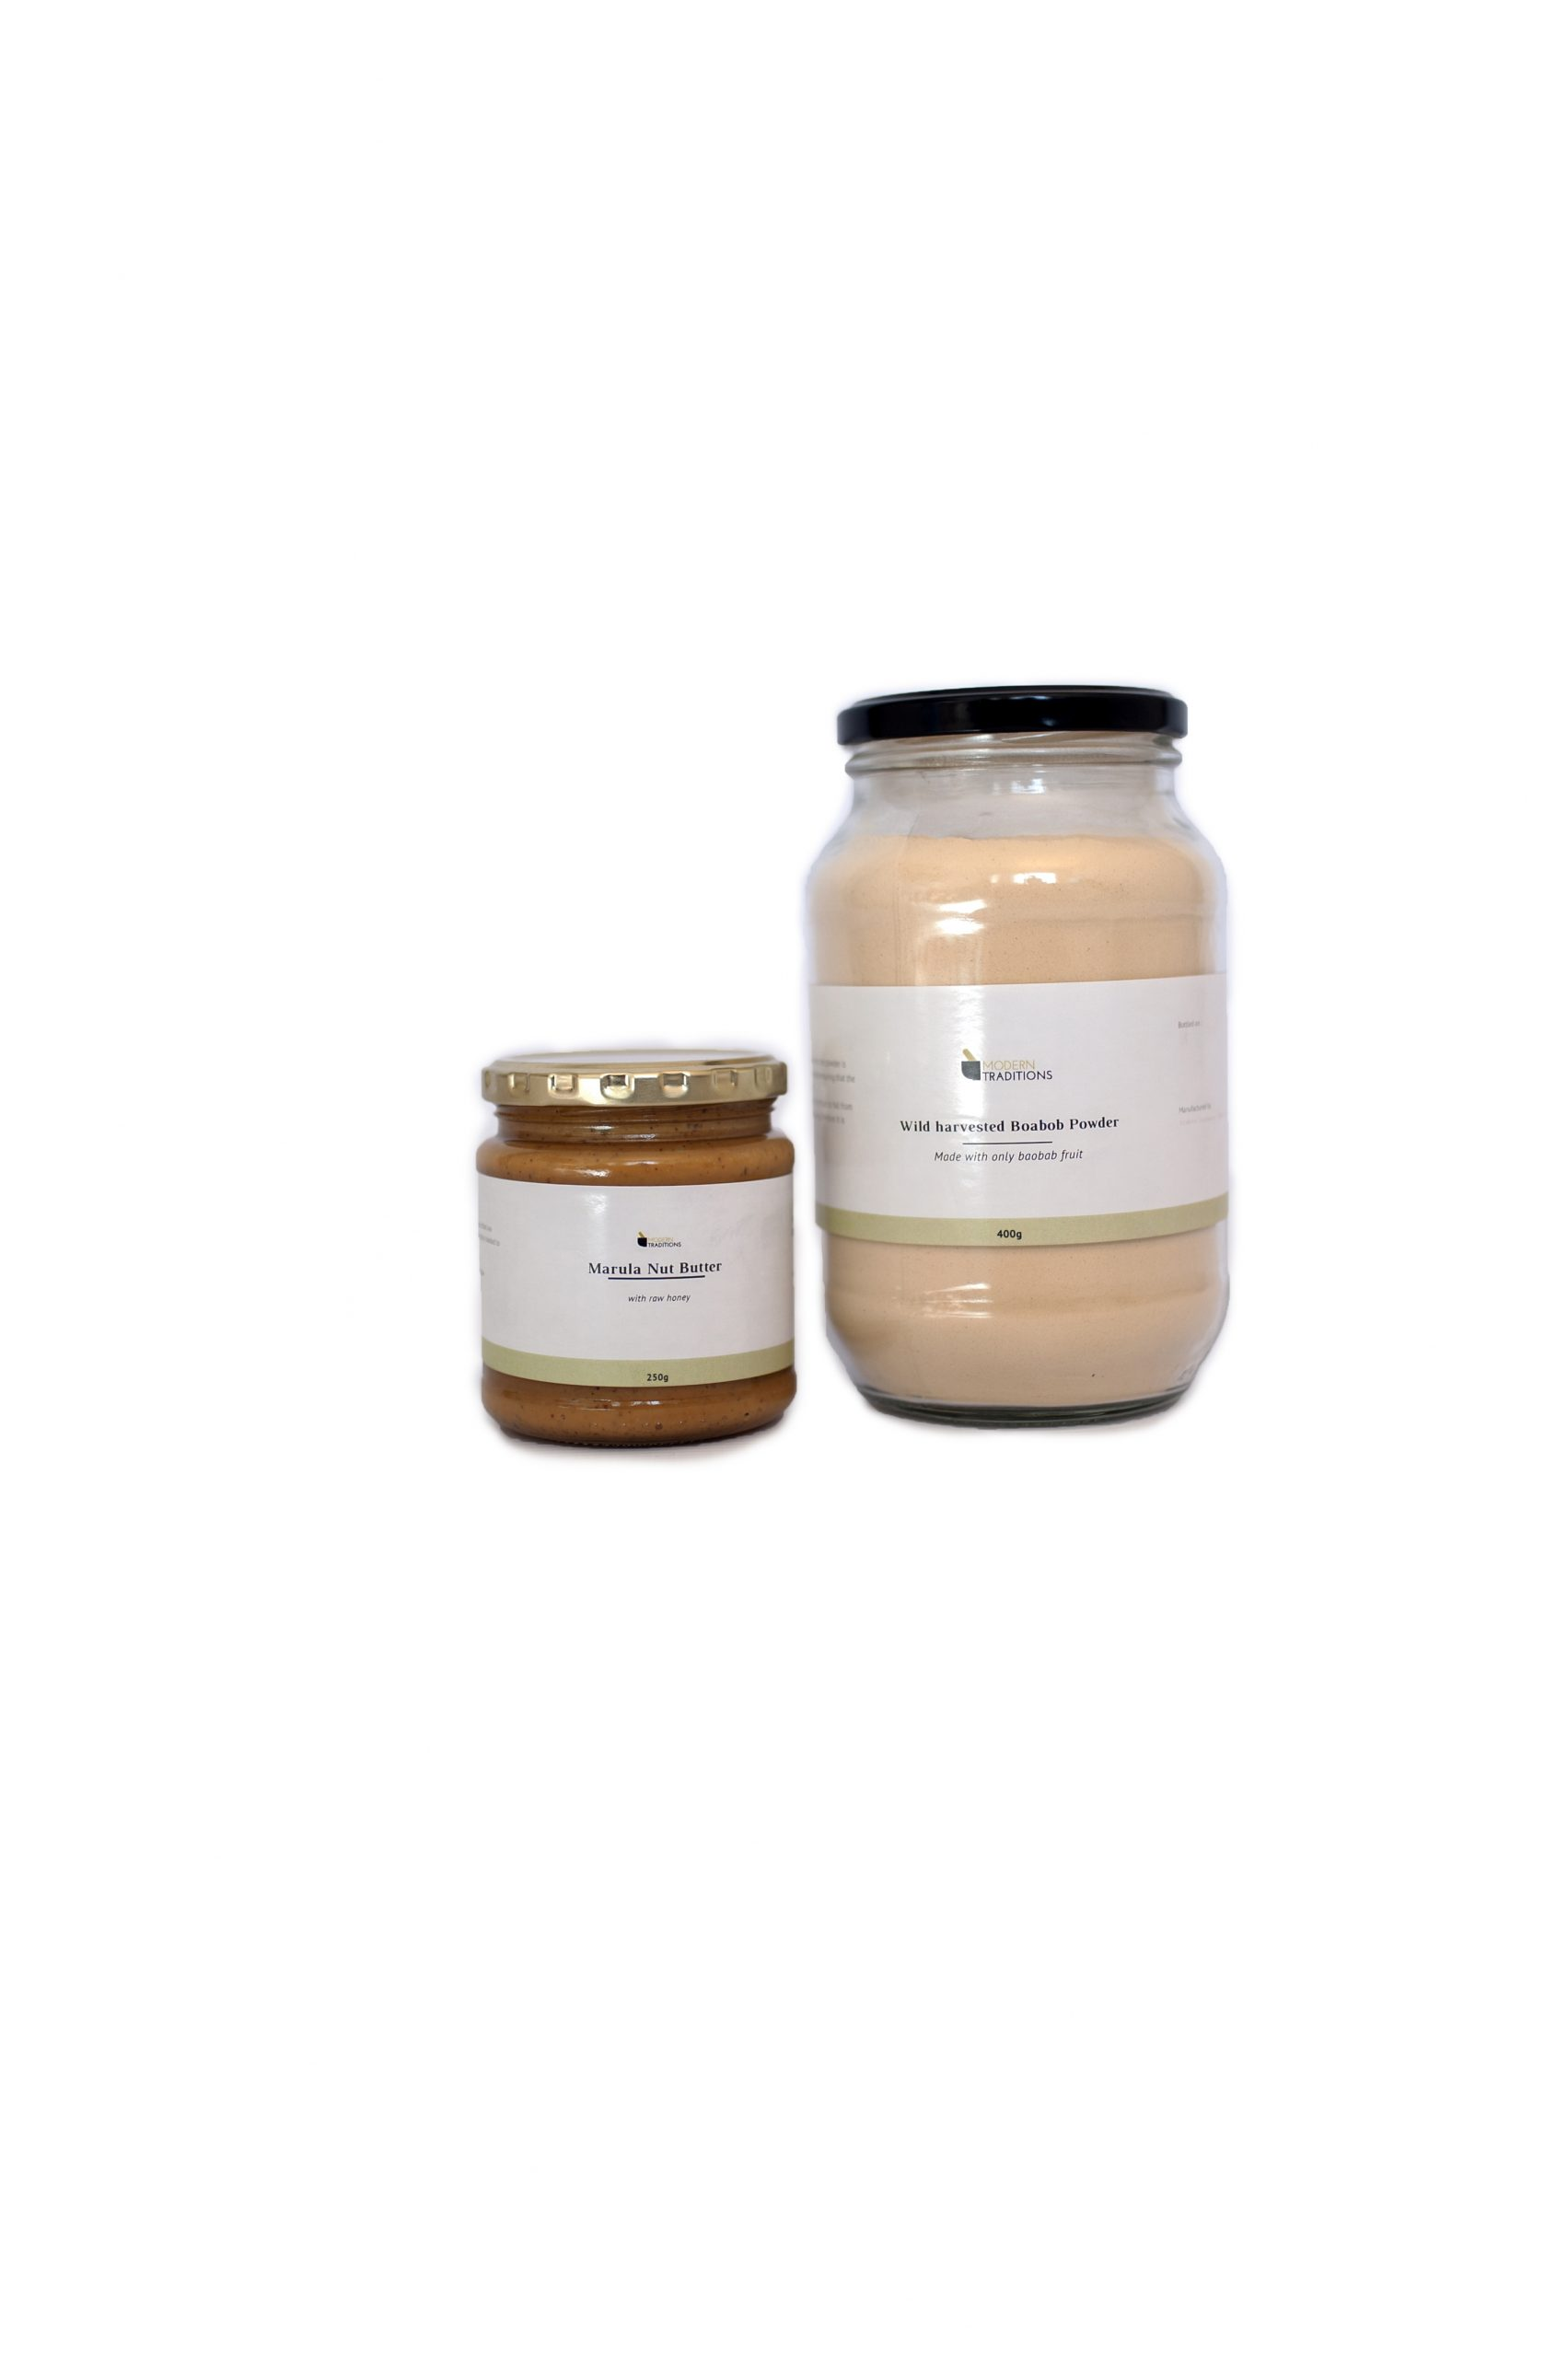 Marula Nut Butter and Baobab Powder Combo